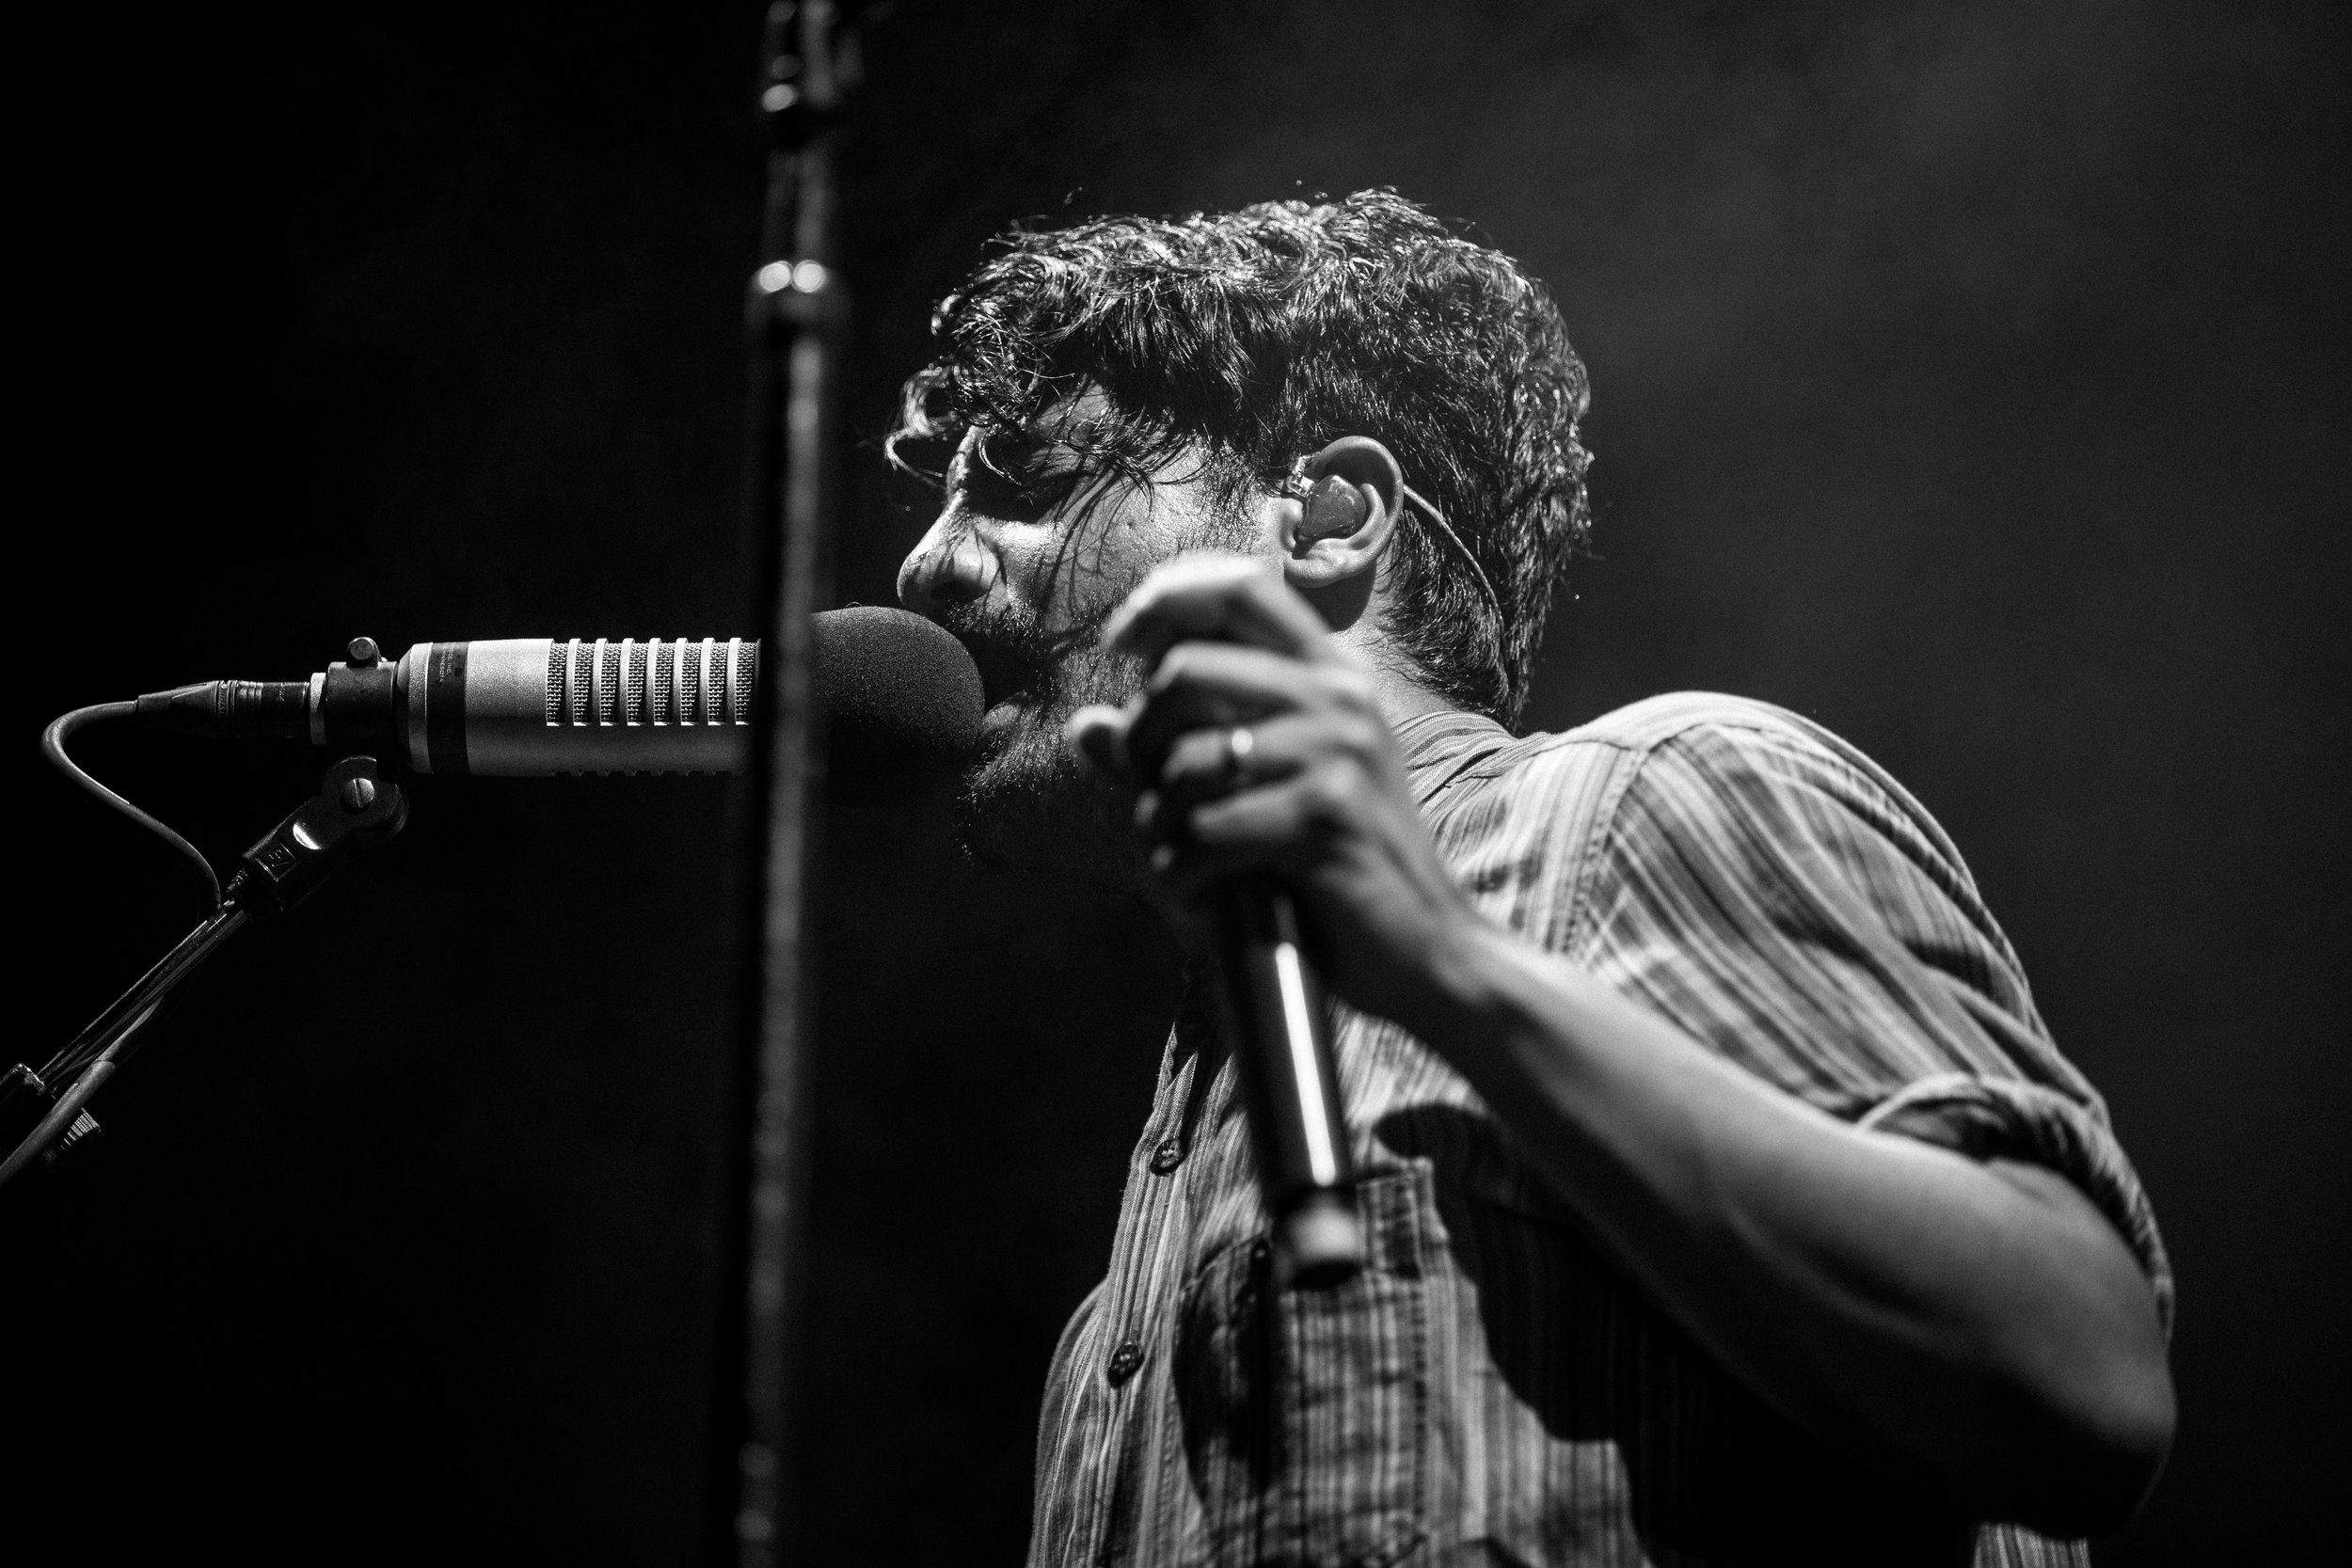 Poulos-YoungTheGiant-Raleigh-2019-26.jpg